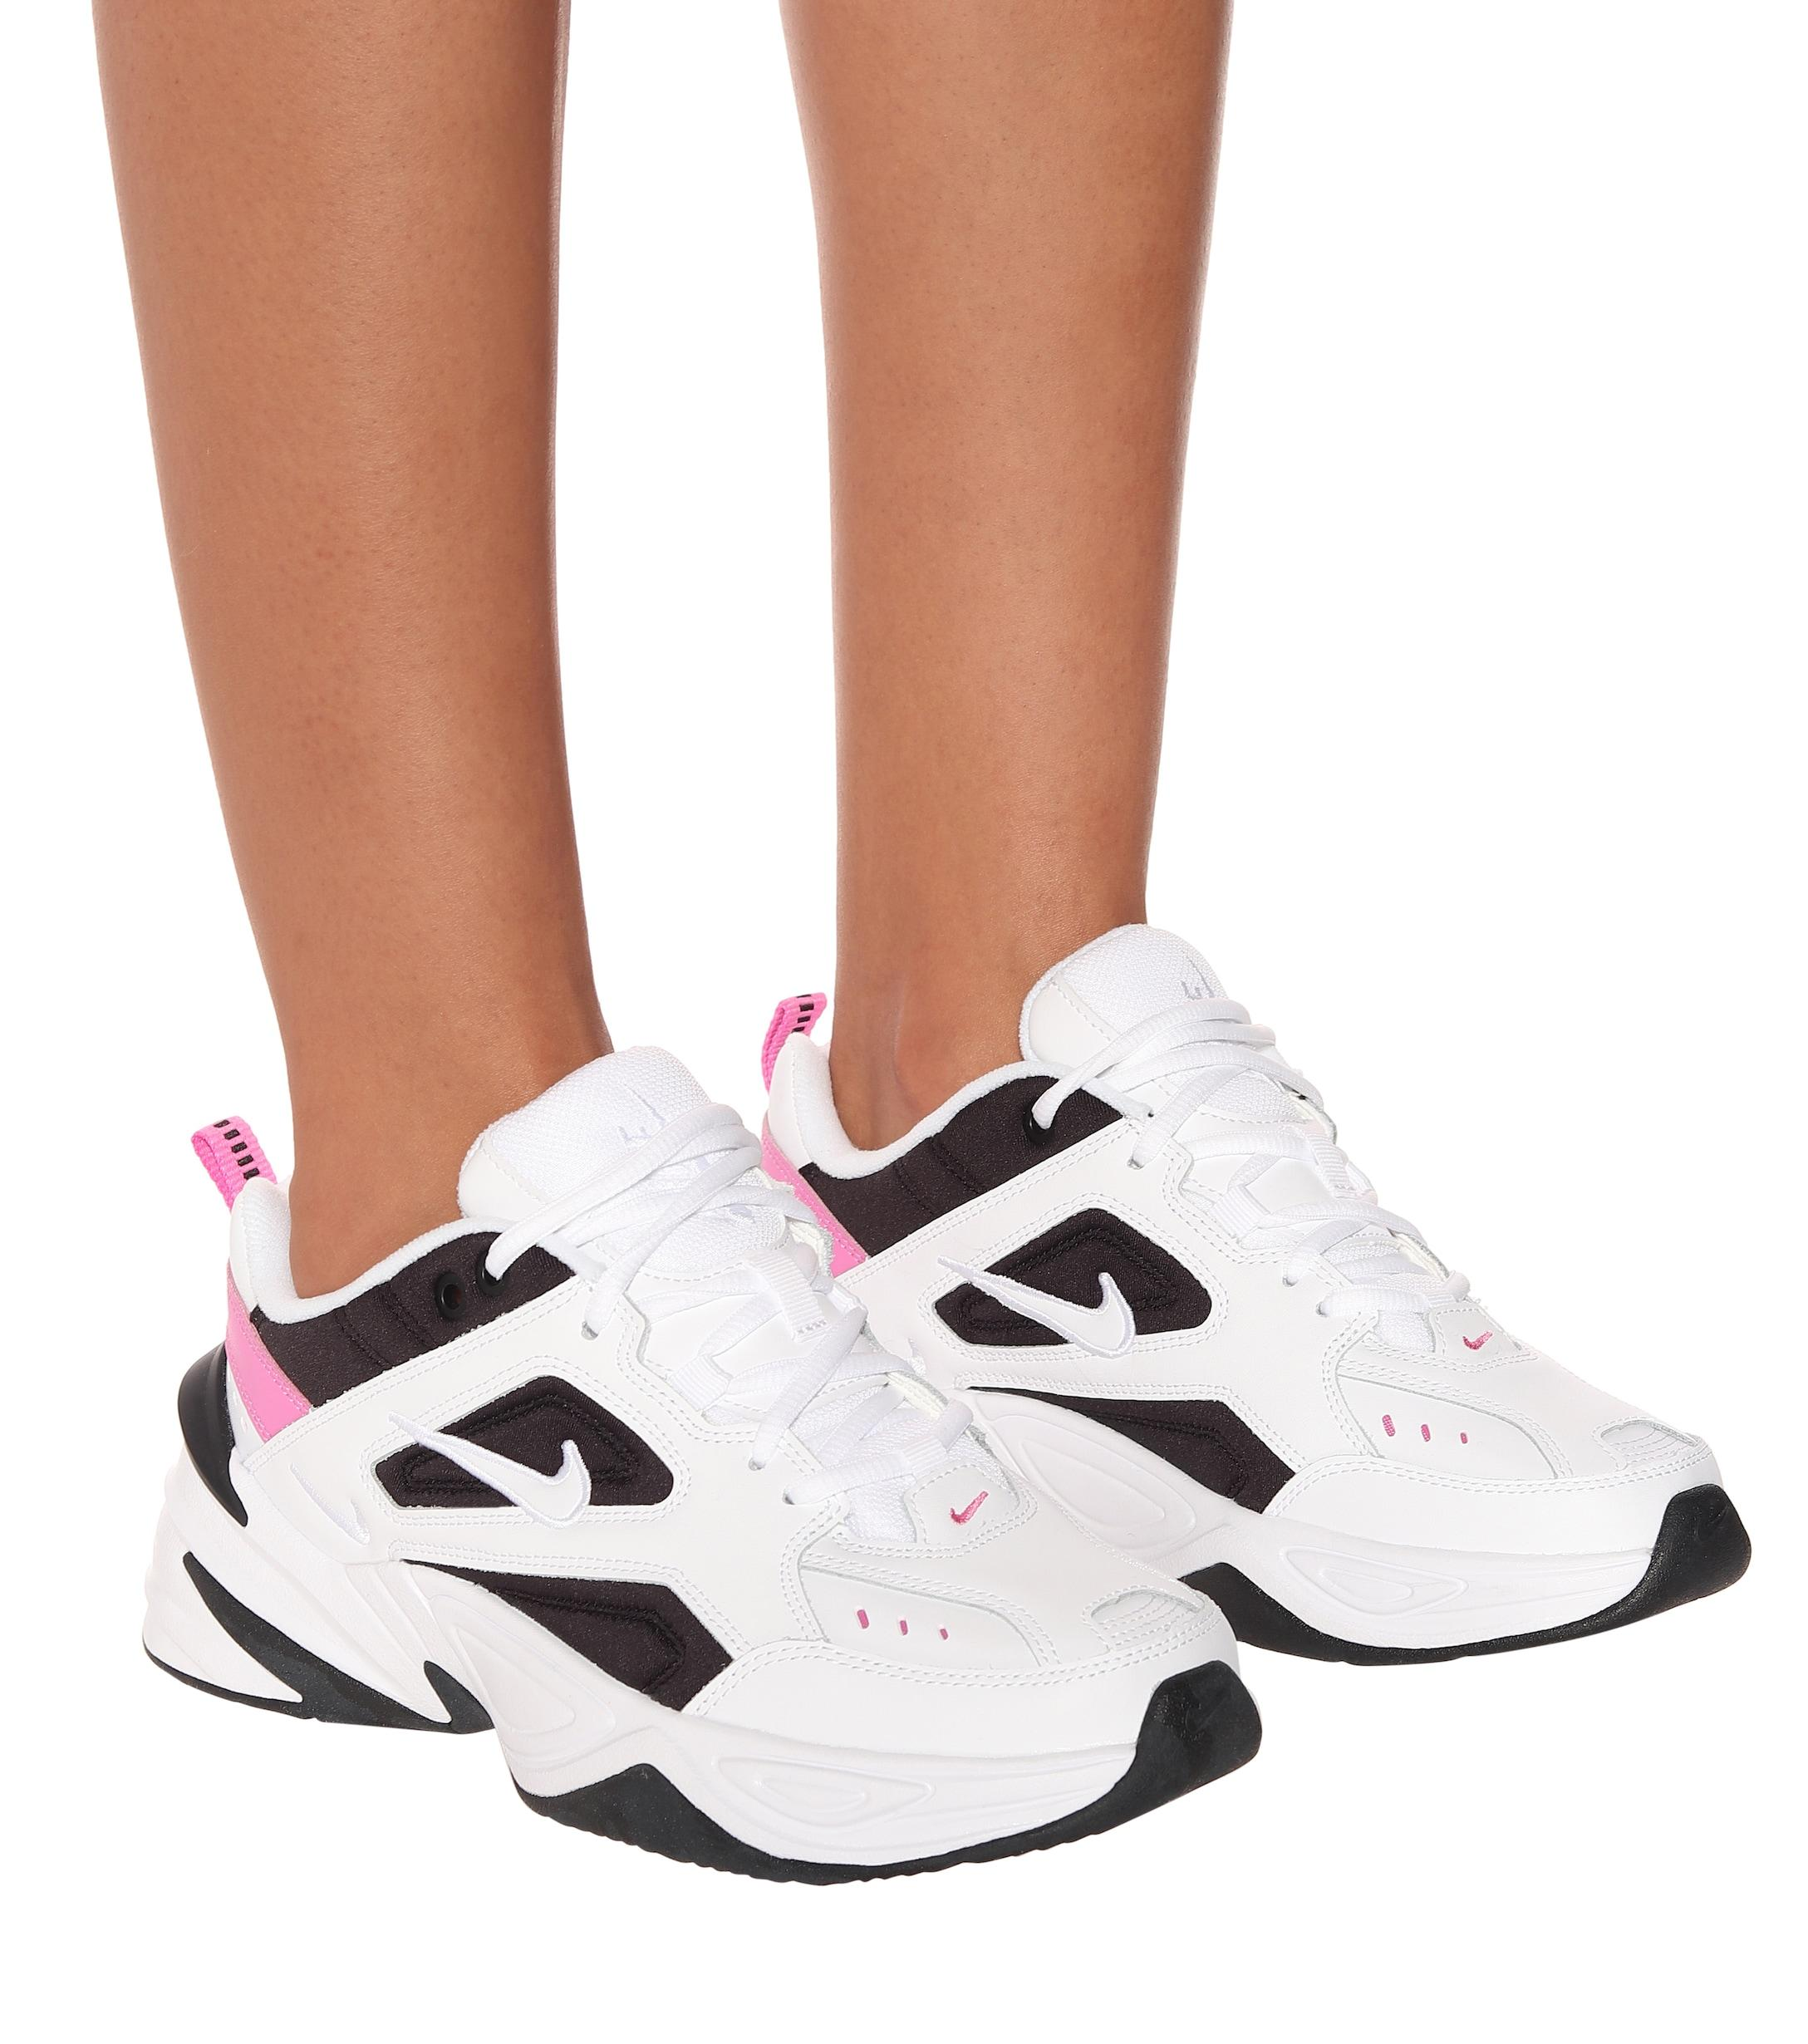 Nike Leather M2k Tekno W in White - Lyst